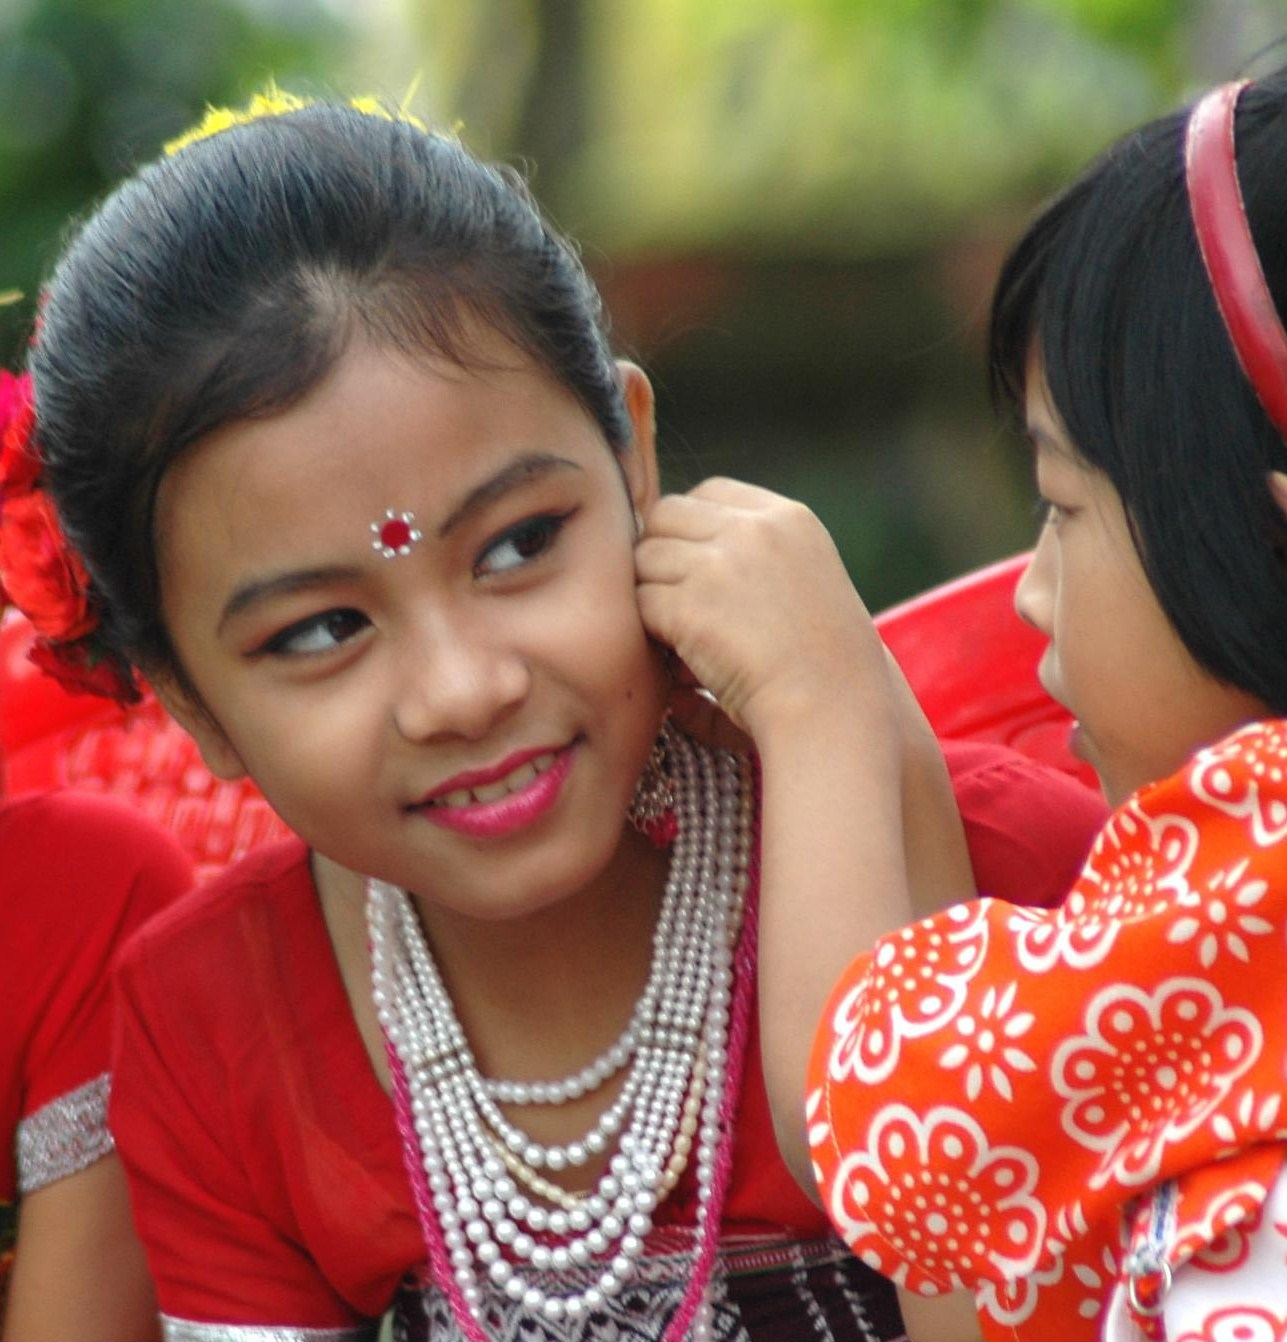 Indian girl form bangladesh india part 1 - 2 6